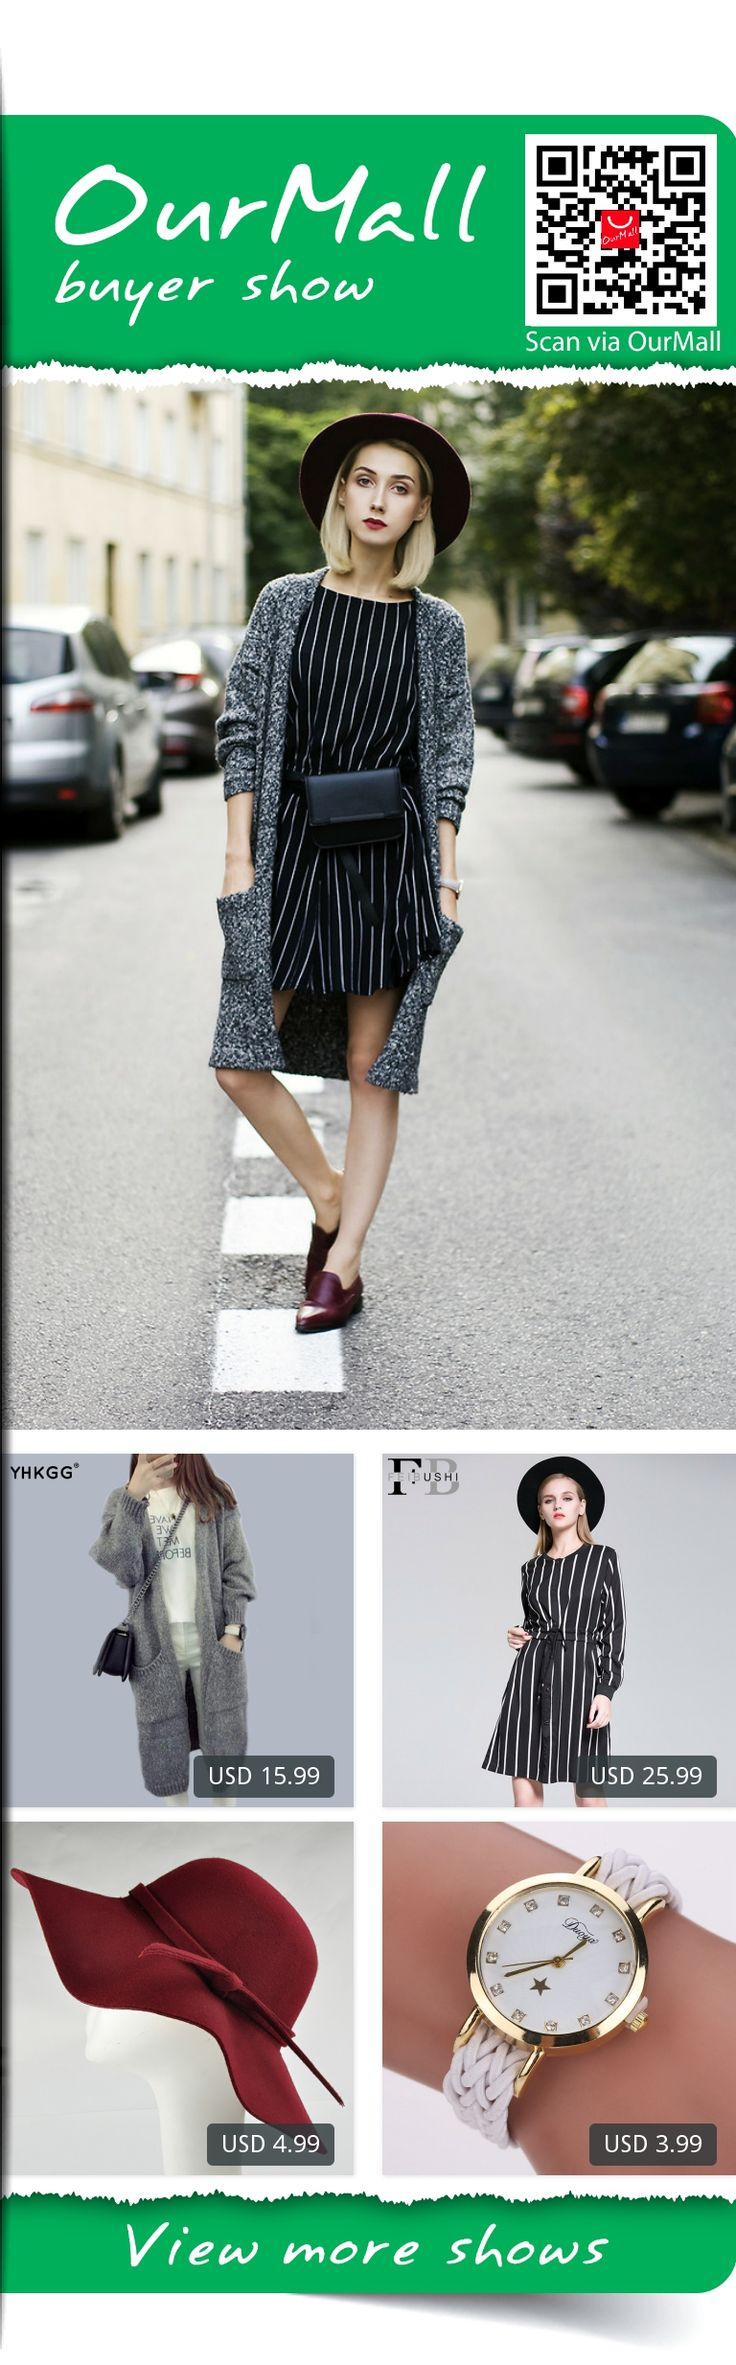 This is Olga Oktawia's buyer show in OurMall;  1.Autumn and Winter Women Loose Knit Cardigan Jacket Pocket Raincoat Korean Wild Ladies 2.Sale Natural Full Autumn Women Vestidos Party And Vertical Striped Dress Long Sleeve Casual Plus 3.2015 Summer Ladies Women\'s Fedora Beach... please click the picture for detail. http://ourmall.com/?imiIjq